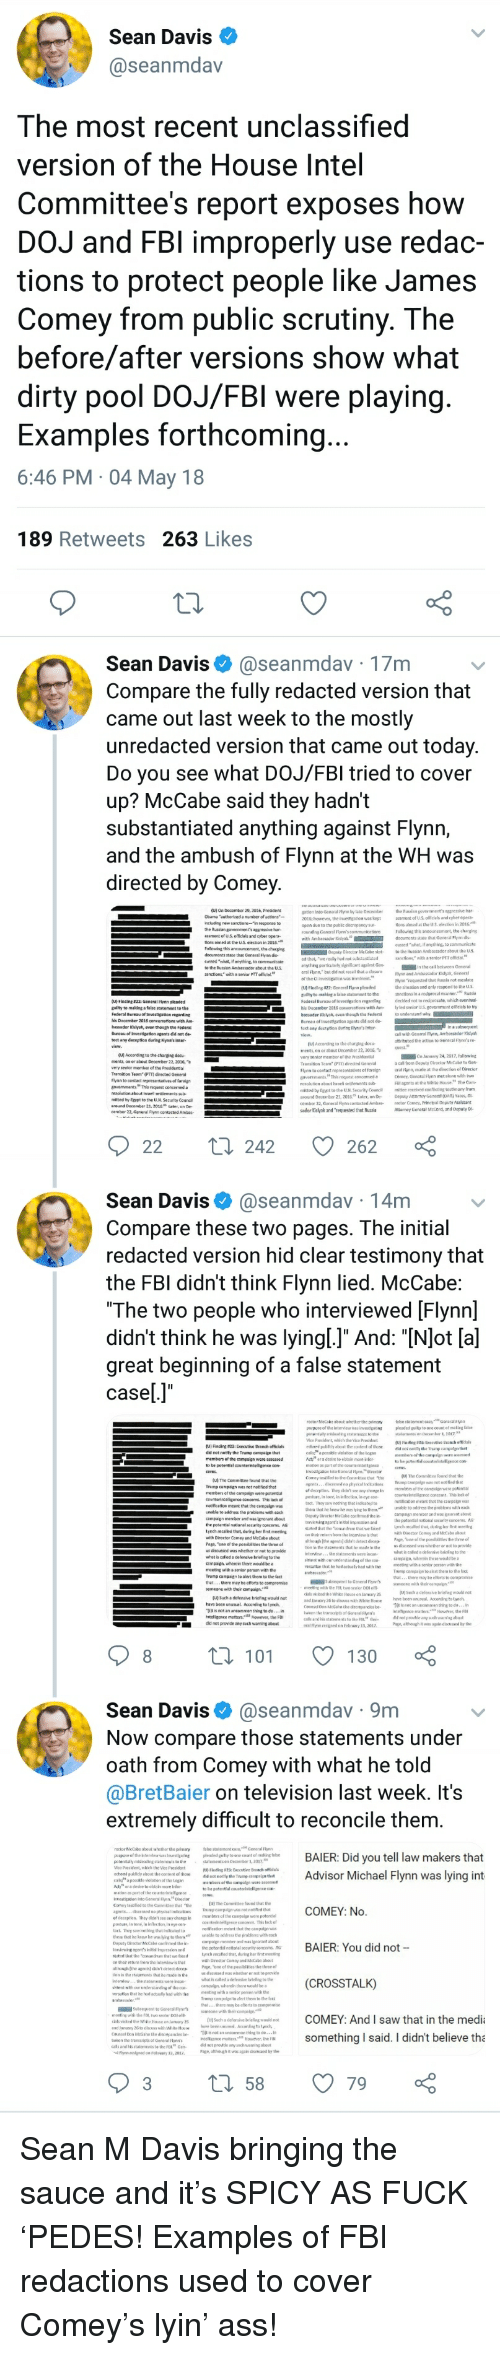 "Ass, Fbi, and Saw: Sean Davis  @seanmdav  The most recent unclassified  version of the House Intel  Committee's report exposes how  DOJ and FBl improperly use redac-  tions to protect people like James  Comey from public scrutiny. The  before/after versions show what  dirty pool DOJ/FBl were playing  Examples forthcoming  6:46 PM 04 May 18  189 Retweets 263 Likes  Sean Davis@seanmdav 17m  Compare the fully redacted version that  came out last week to the mostly  unredacted version that came out today  Do you see what DOJ/FBI tried to cover  up? McCabe said they hadn't  substantiated anything against Flynn,  and the ambush of Flynn at the WH was  directed by Comey  242  262  Sean Davis @seanmdav 14mv  Compare these two pages. The initial  redacted version hid clear testimony that  the FBl didn't think Flynn lied. McCabe  ""The two people who interviewed [Flynn]  didn't think he was lyingl.]"" And: ""[NJot [a]  great beginning of a false statement  casel.]""  ta 101 130  Sean Davisaseanmdav 9m  Now compare those statements under  oath from Comey with what he told  @BretBaier on television last week. It's  extremely difficult to reconcile them  BAIER: Did you tell law makers that  Advisor Michael Flynn was lying int  COMEY: No.  BAIER: You did not  (CROSSTALK)  COMEY: And I saw that in the media  something I said. I didn't believe tha"